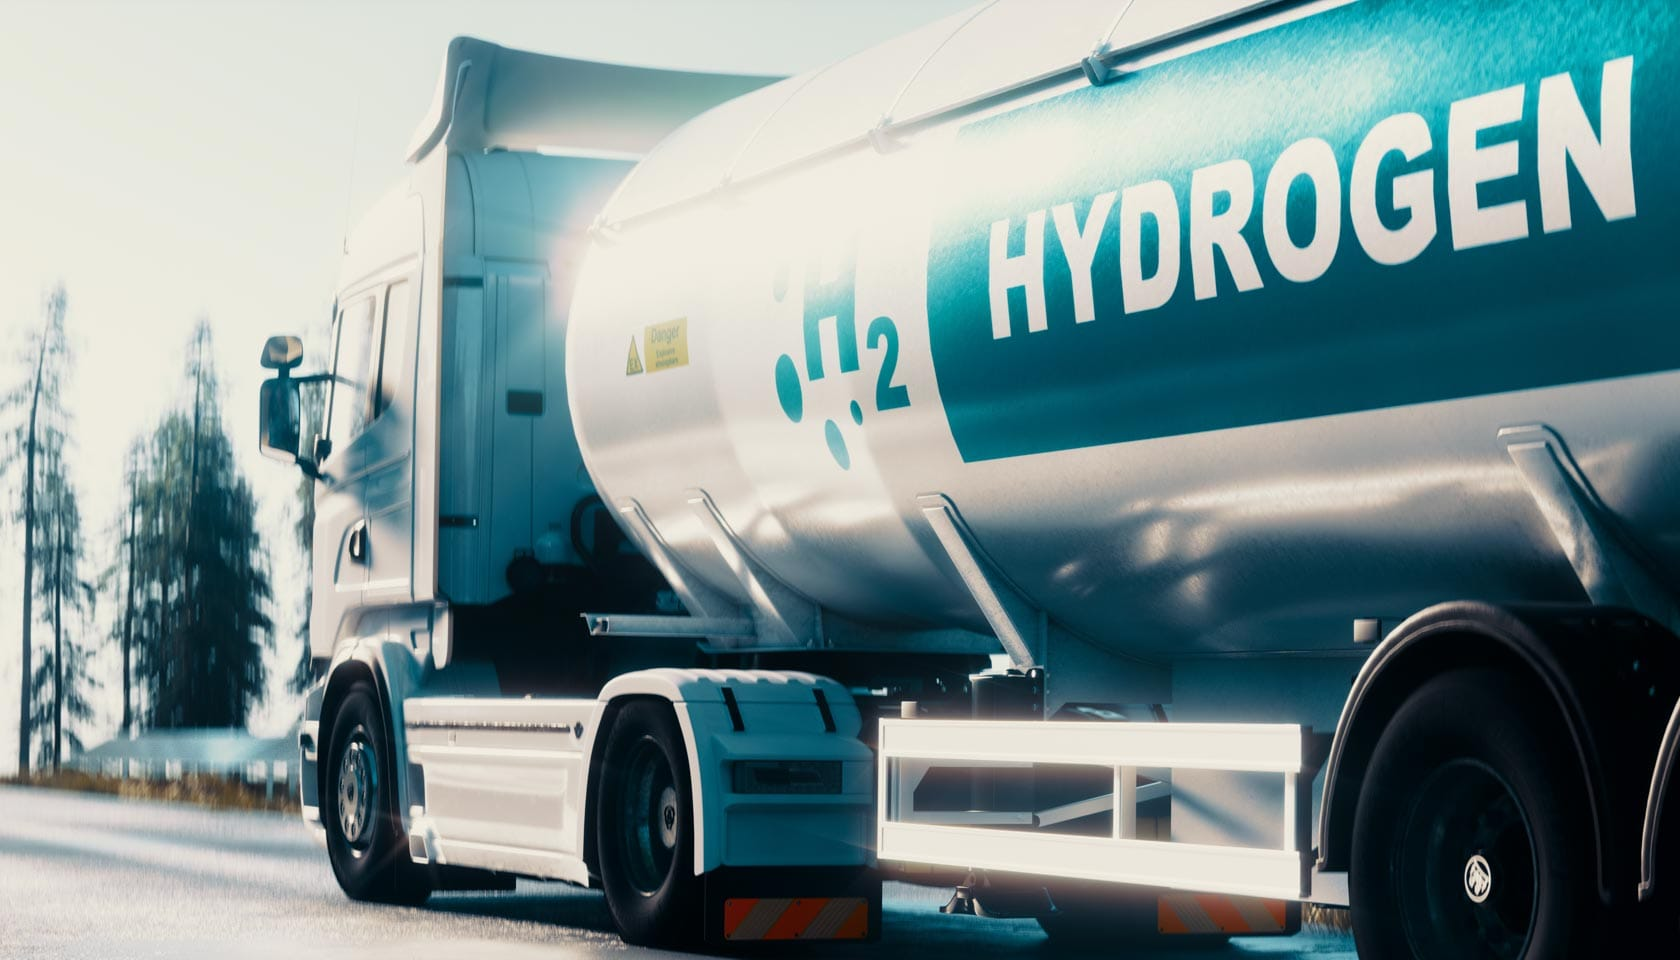 The future of Hydrogen and its role in decarbonization